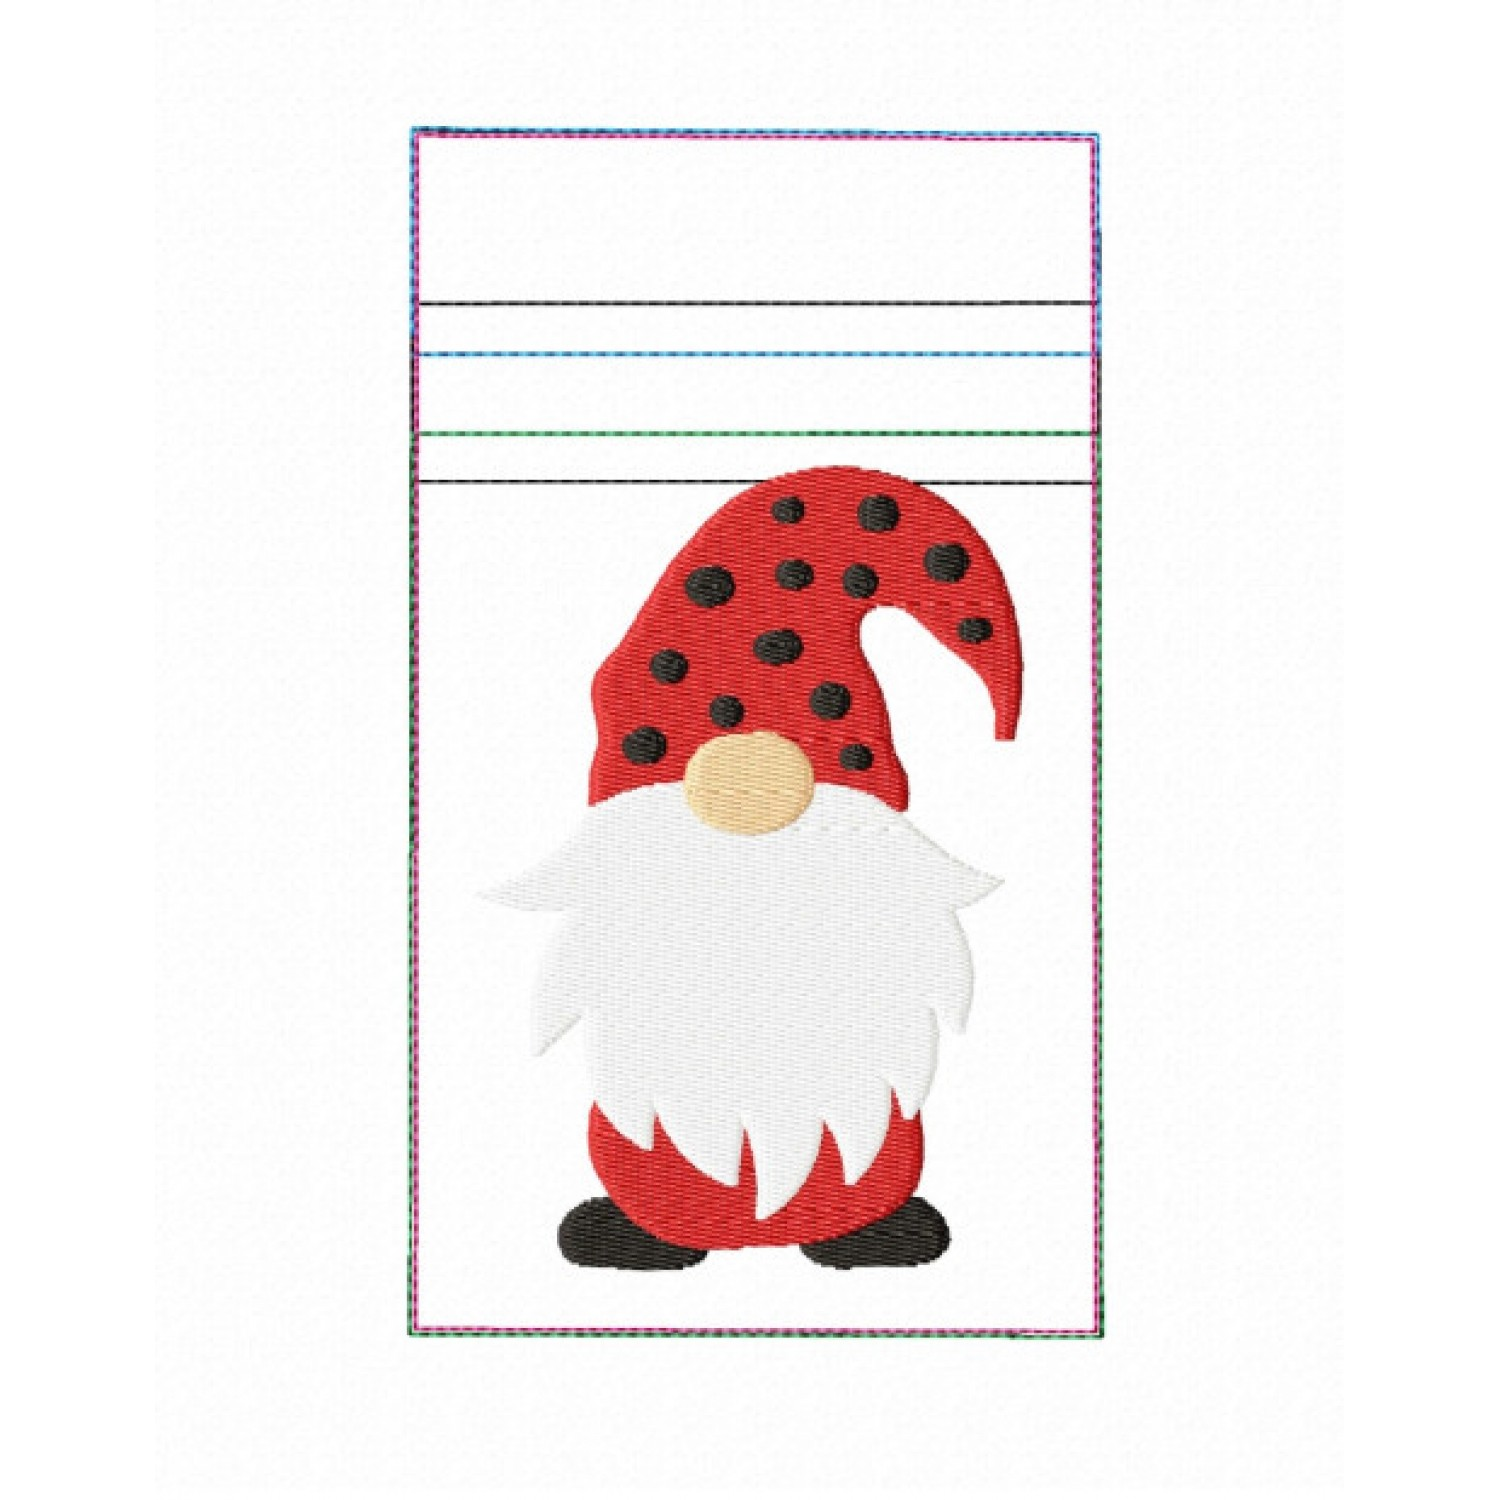 Zipper bag gnome V2 embroidery ITH in the hoop